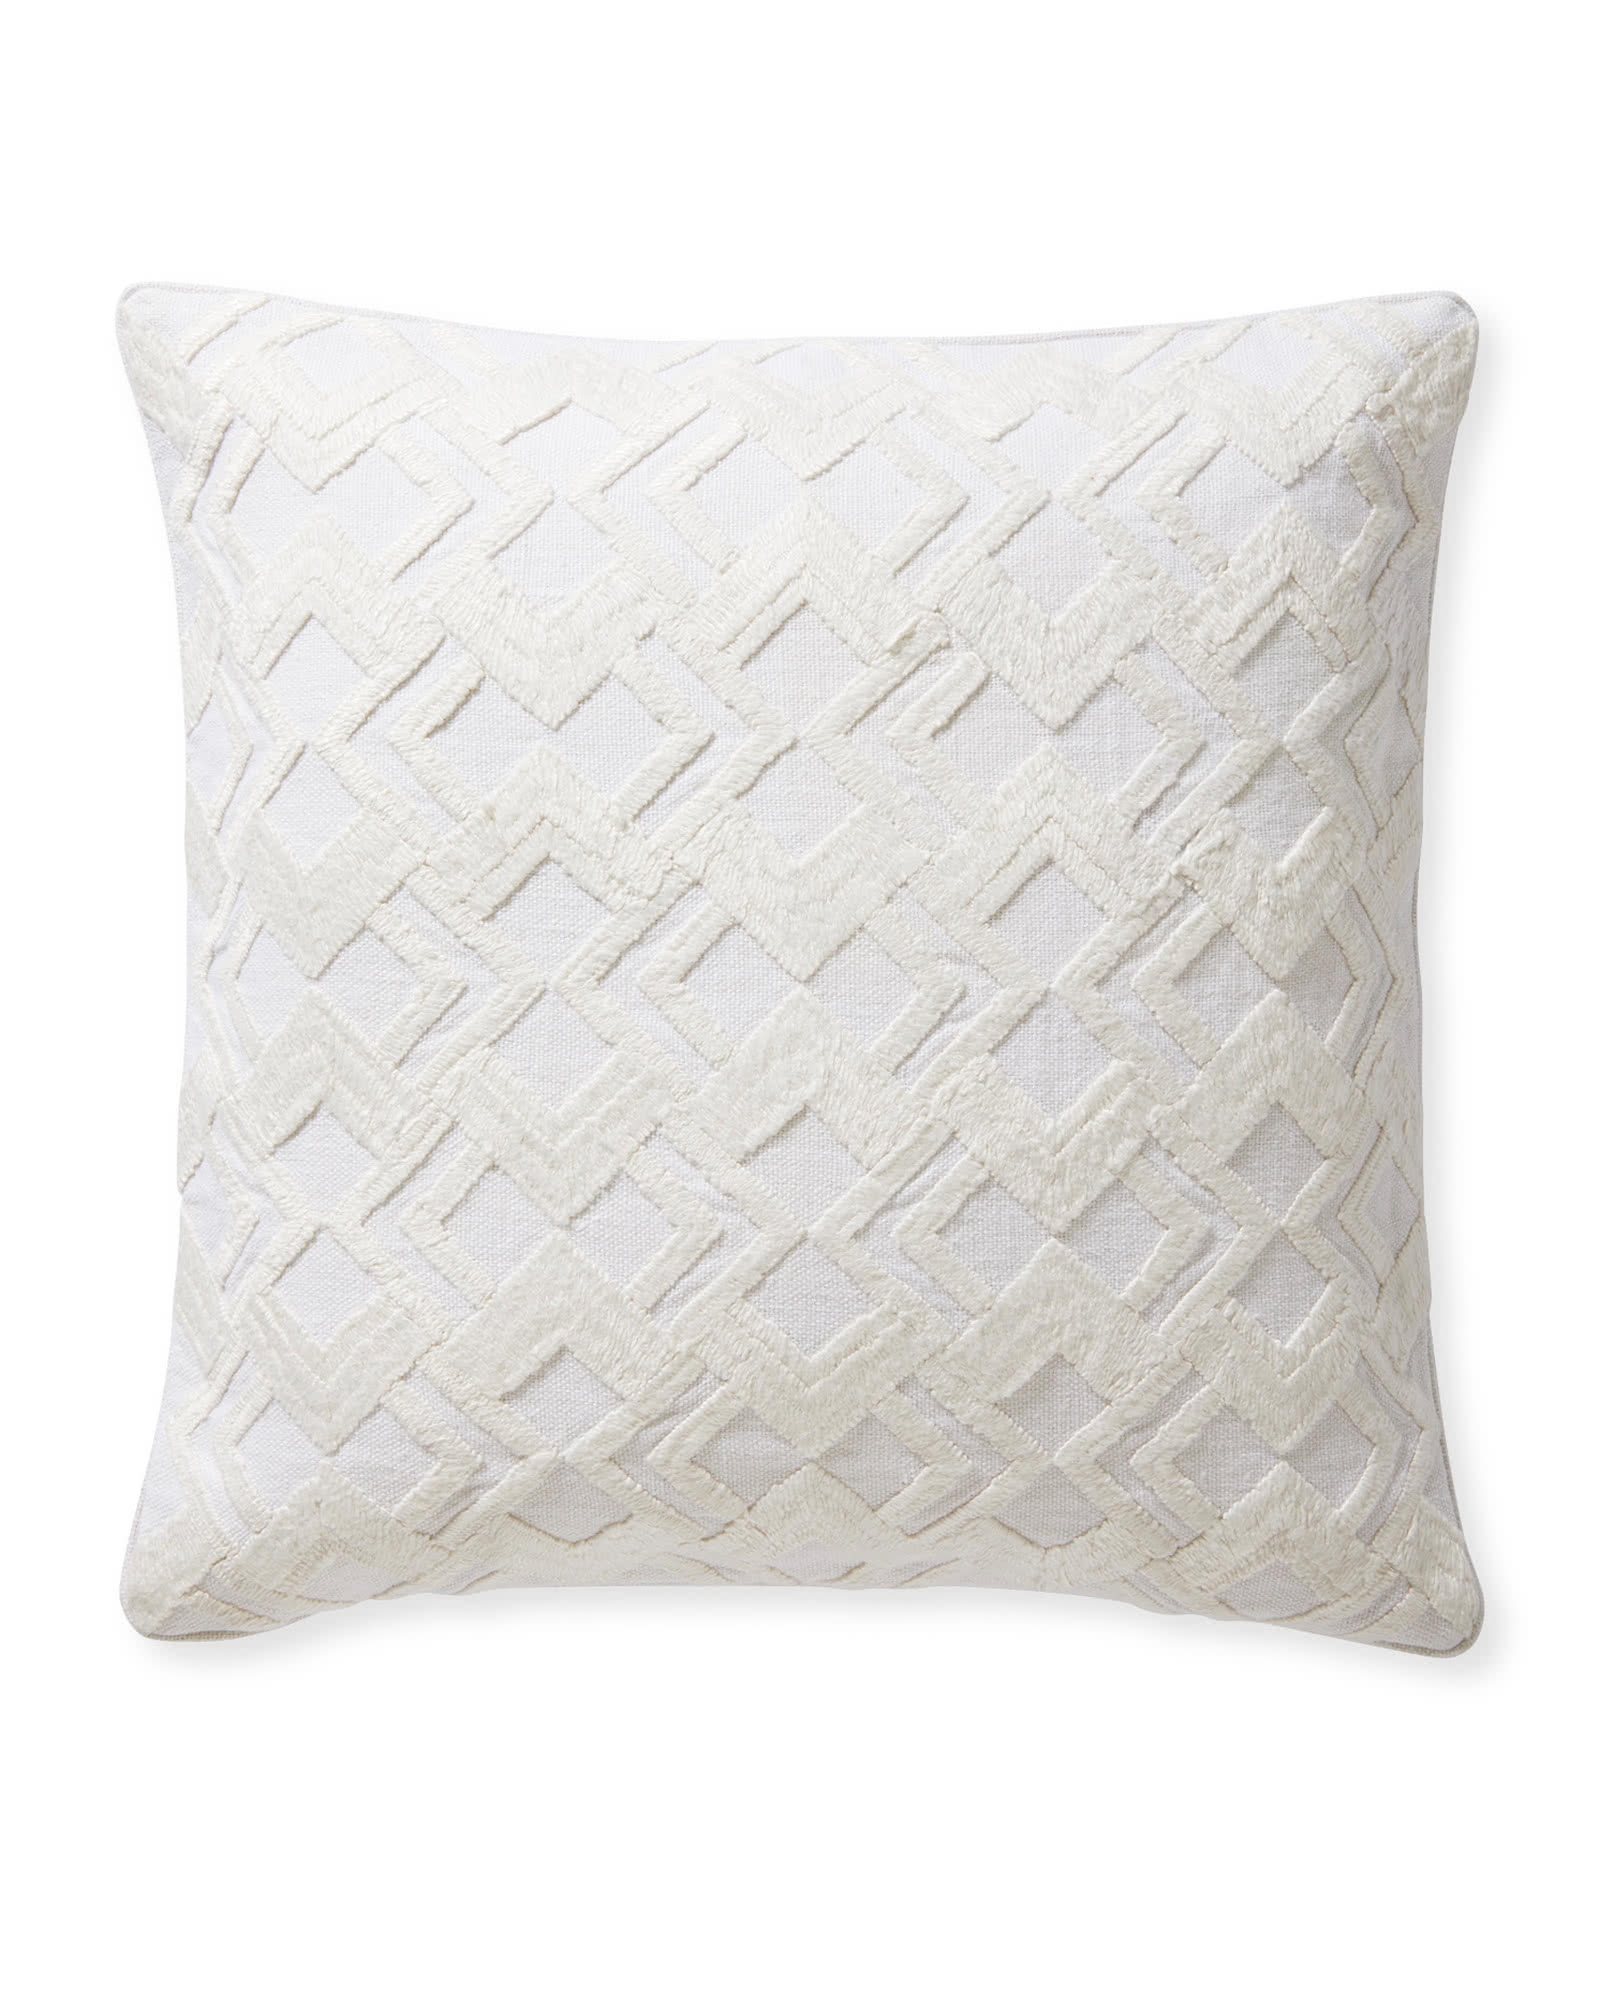 Paige Pillow Cover,